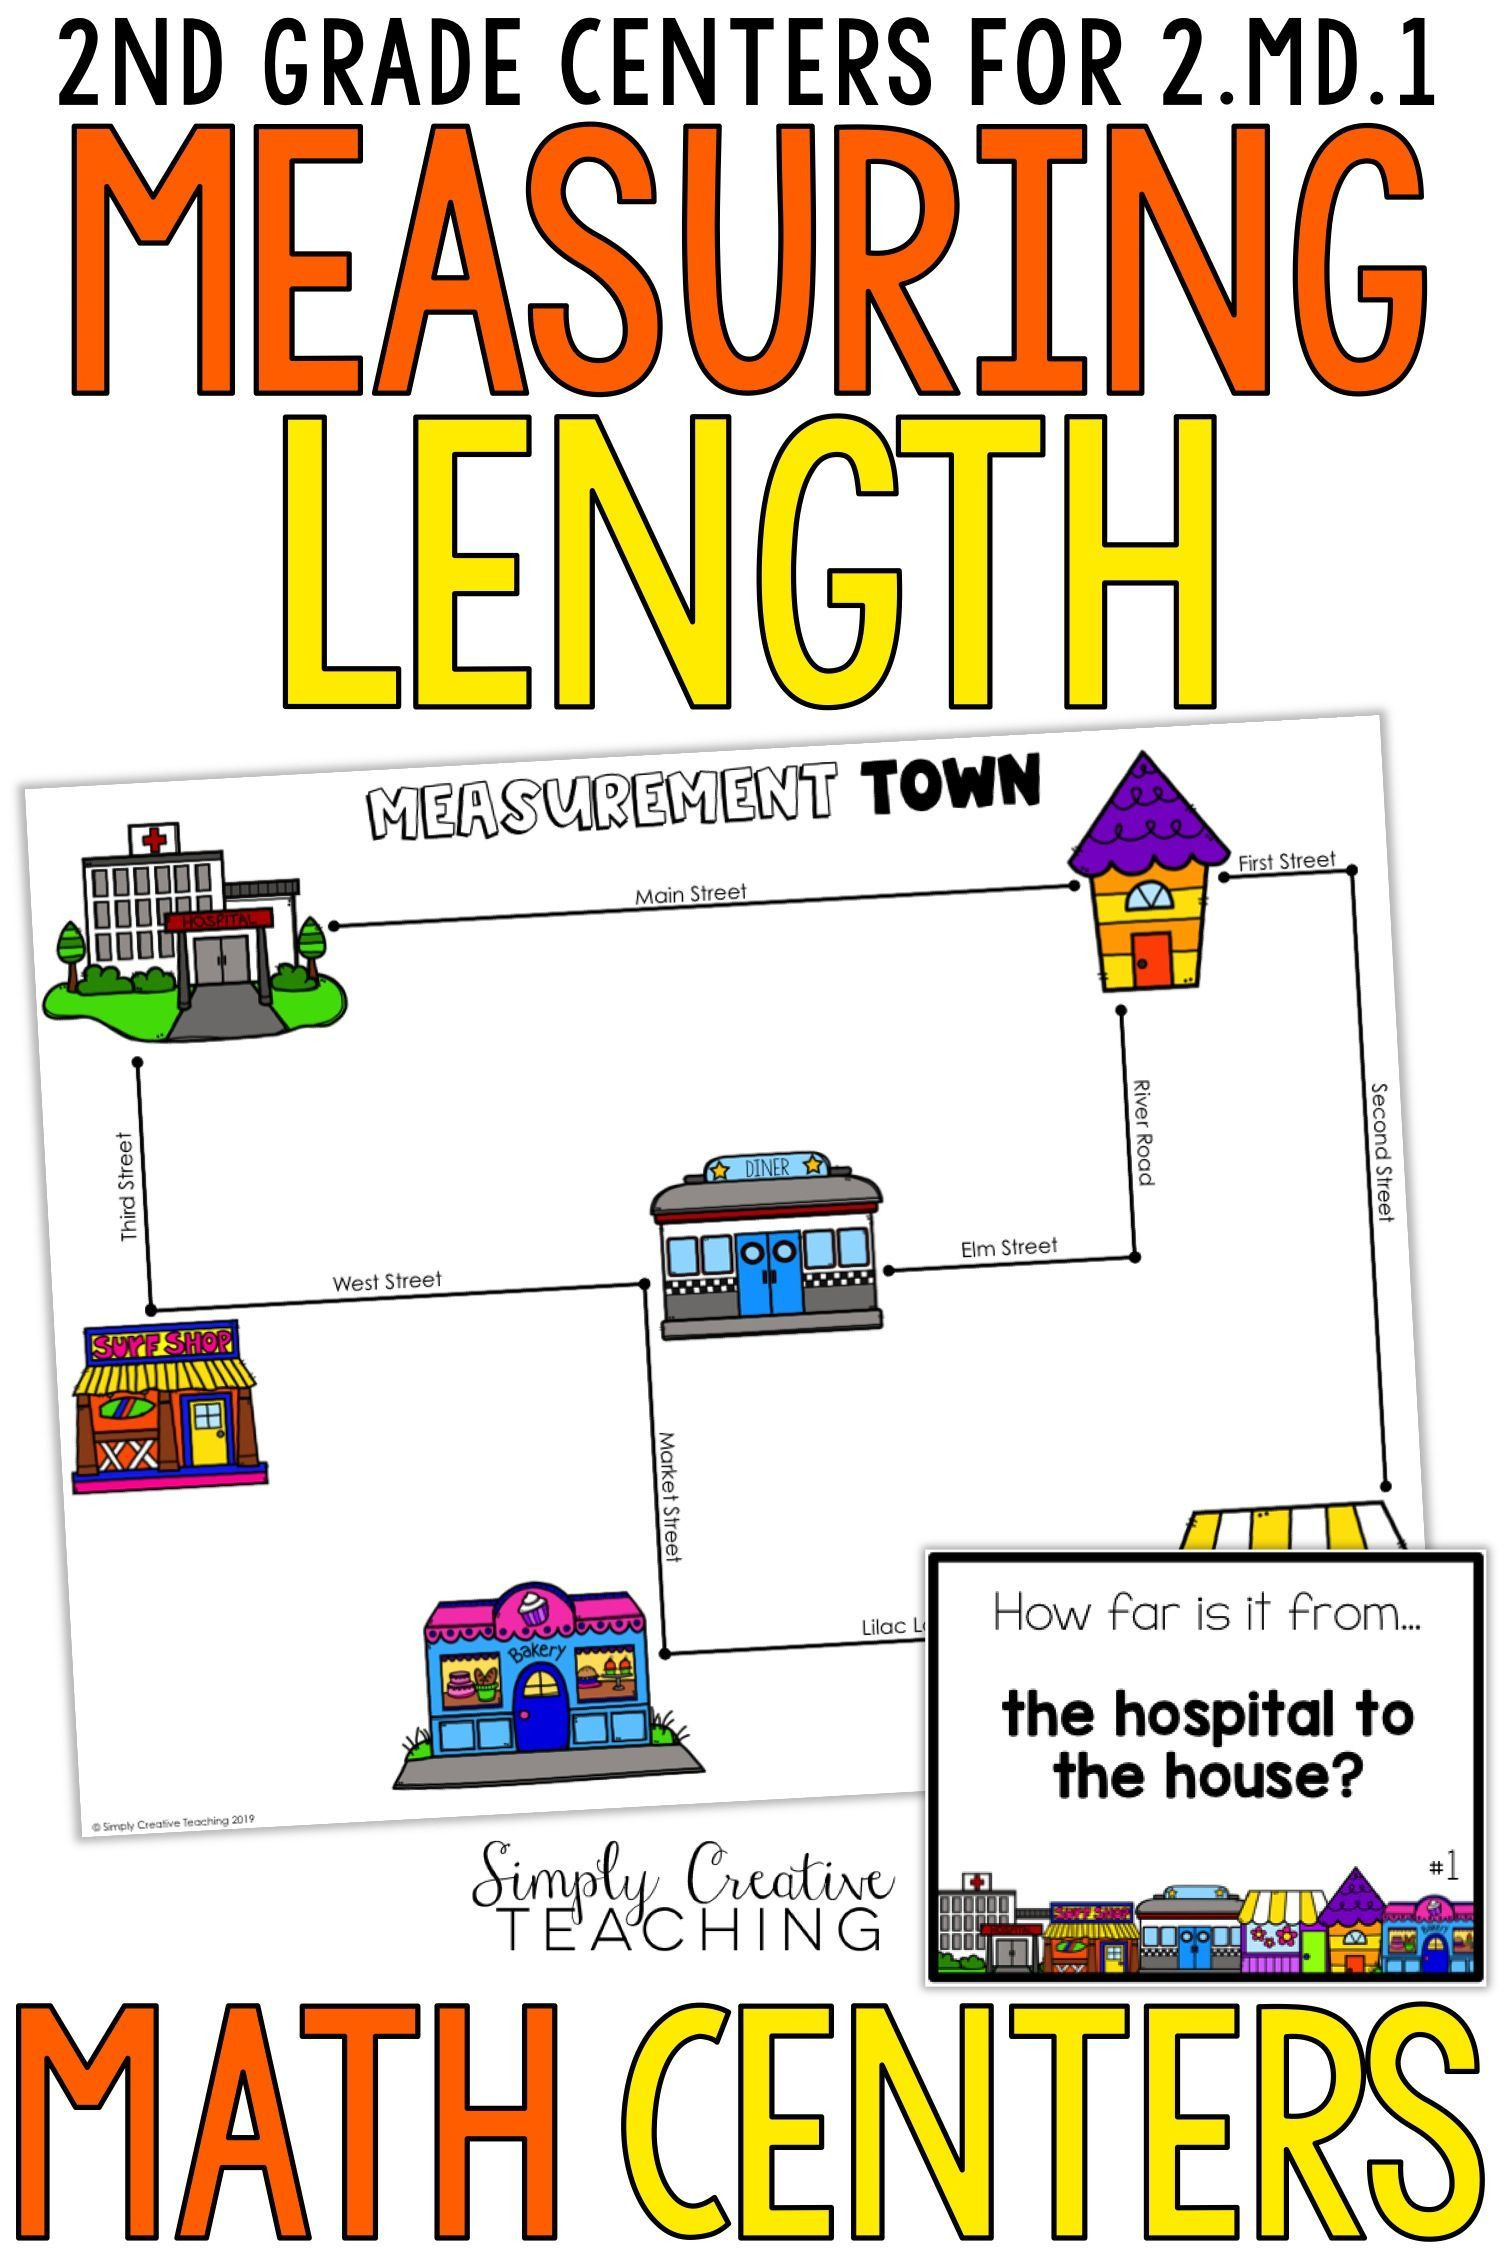 Measuring Worksheets for 2nd Grade 2nd Grade Measurement Centers for 2 Md 1